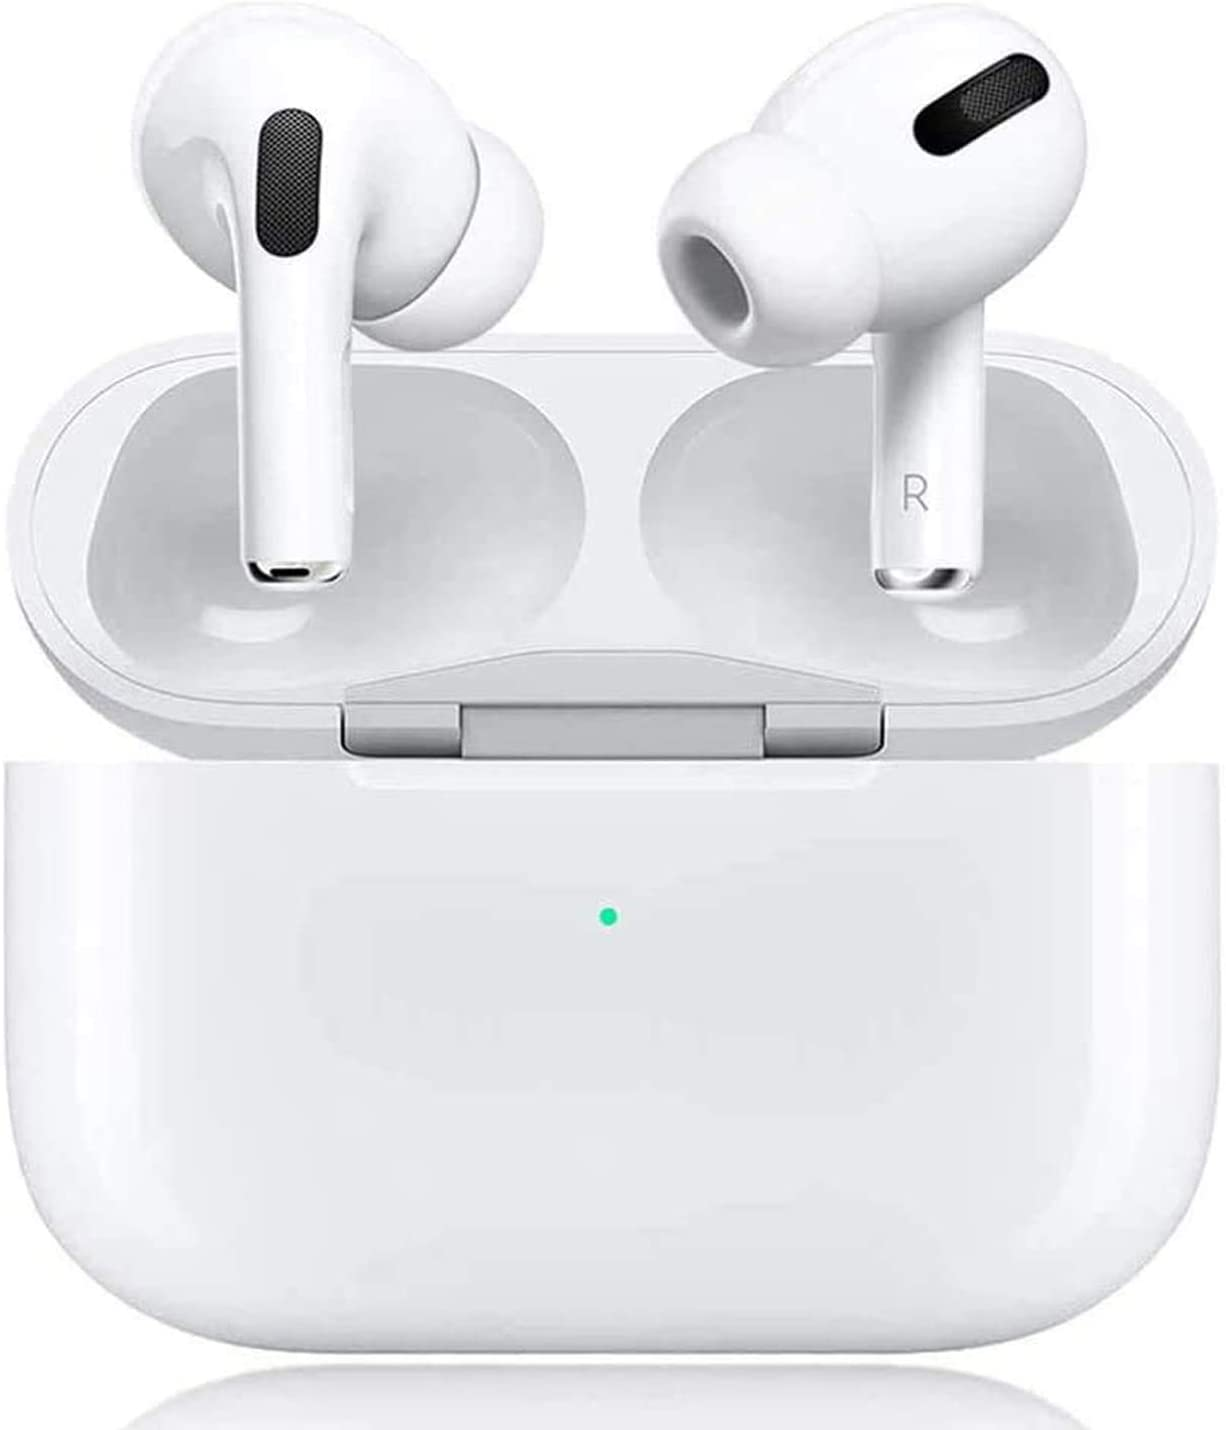 Wireless Earbuds Bluetooth 5.0 Headphones with 24H Charging Case, 3D Stereo IPX5 Waterproof Sports Earphones in-Ear Headphones with Built-in Mic,for iPhone/Apple Airpods Pro/Android/Samsung